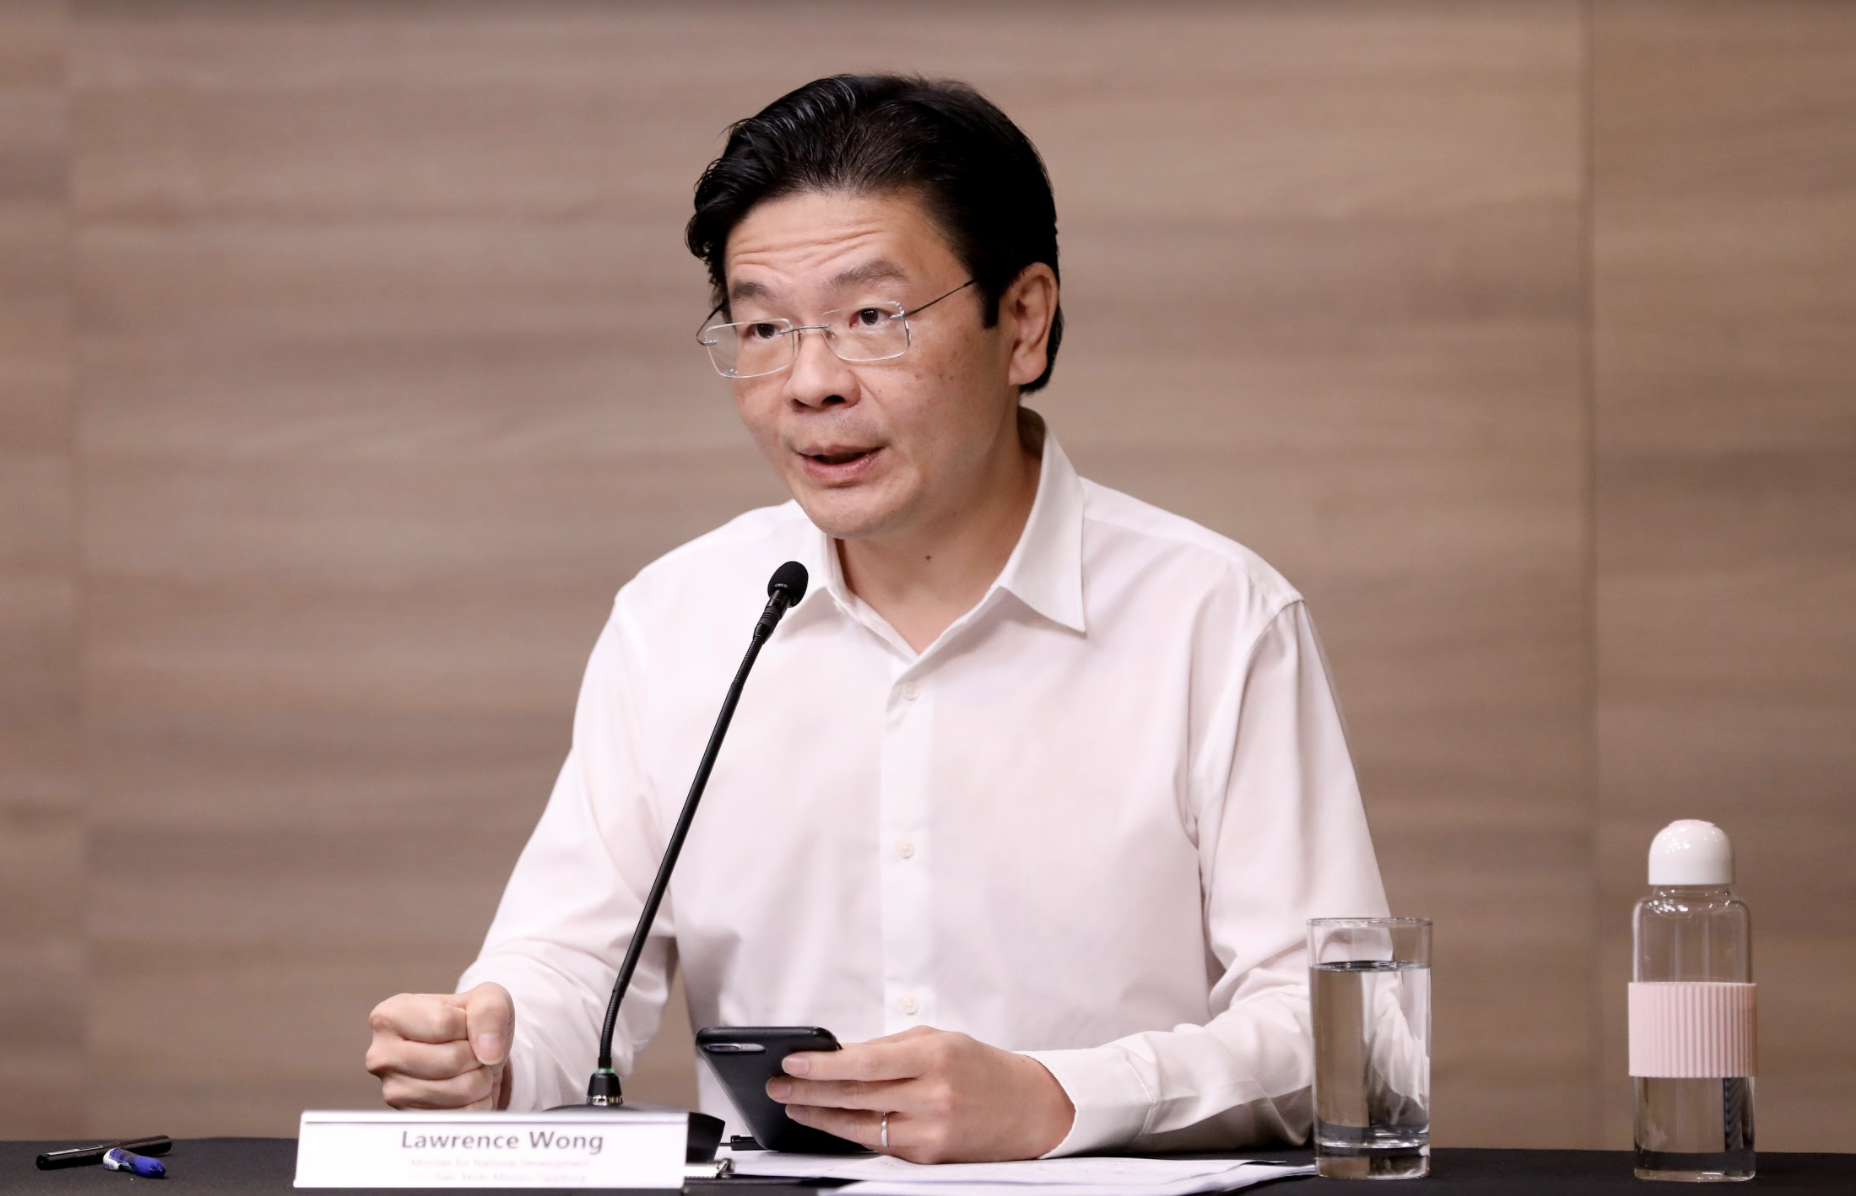 Minister Lawrence Wong, Co-chair of the multi-ministry taskforce on COVID-19. Photo courtesy: MCI